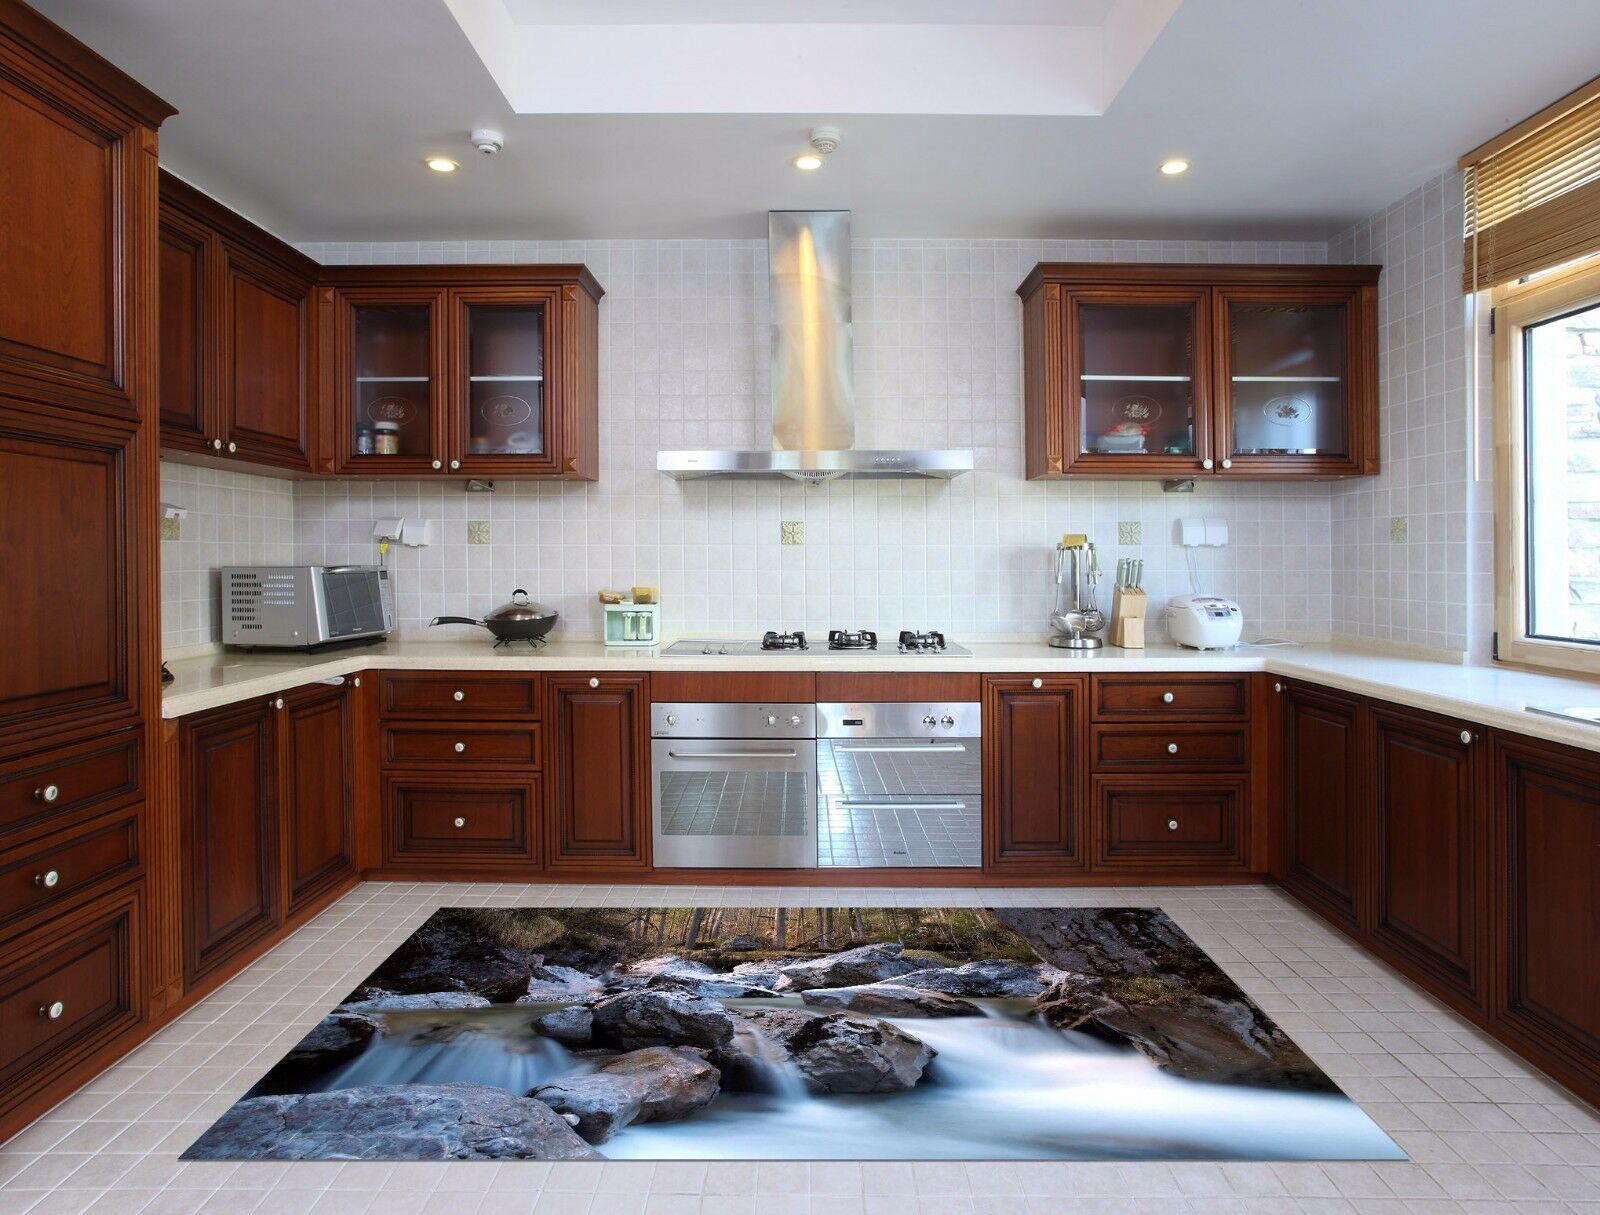 3D Stone Water 788 Kitchen Mat Floor Murals Wall Print Wall Deco UK Carly